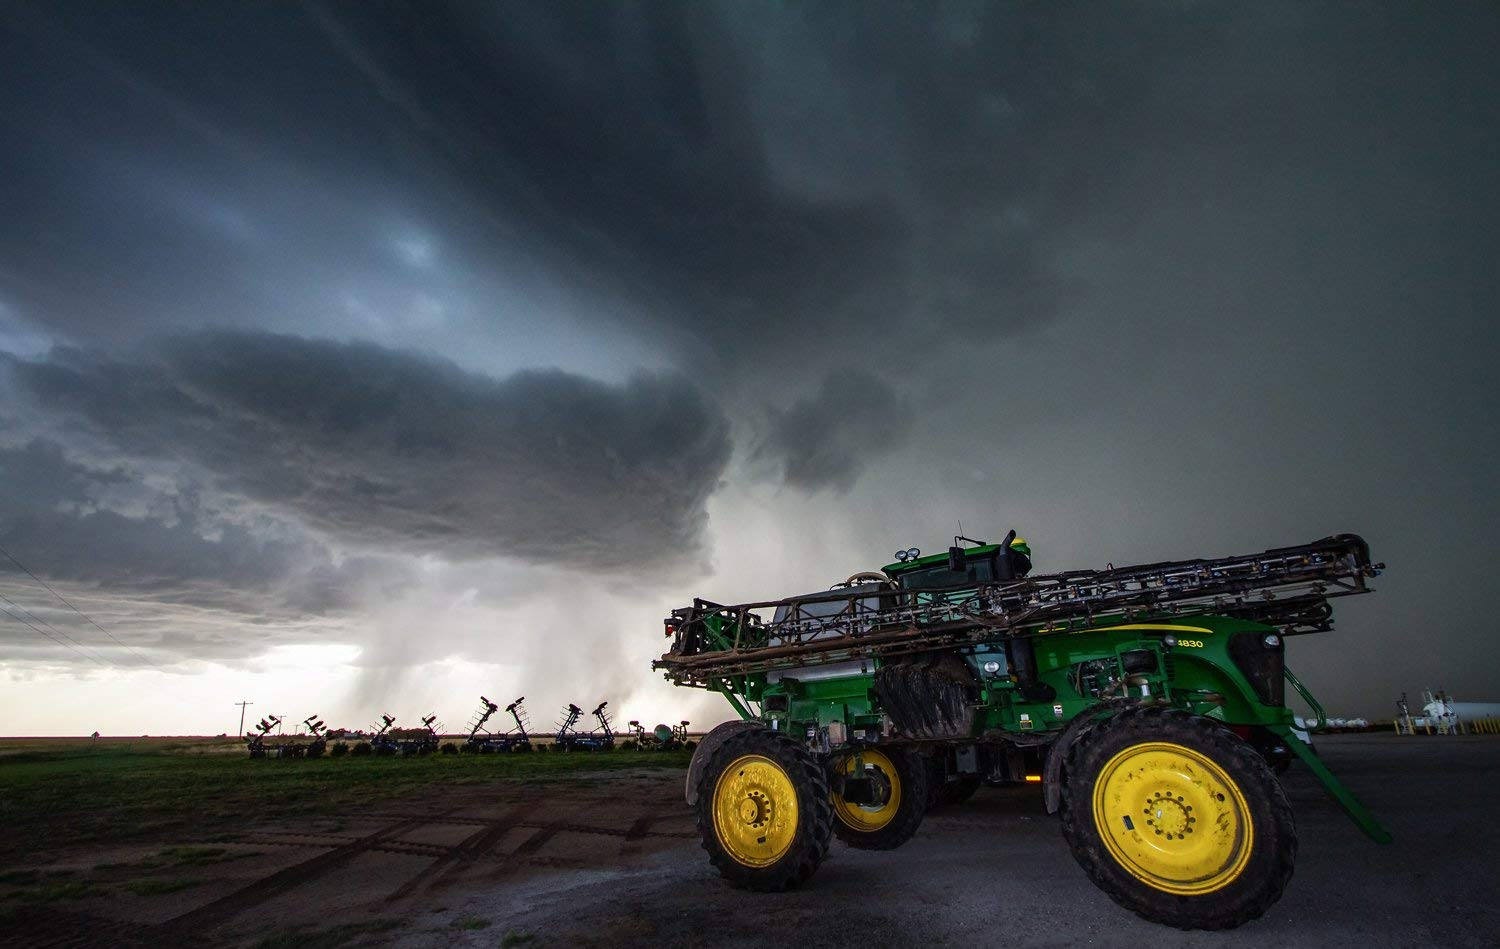 John Deere Photography Art Print - Picture of Storm Over Sprayer in Kansas Farm and Ranch Decor Artwork for Home Decoration 5x7 to 30x45